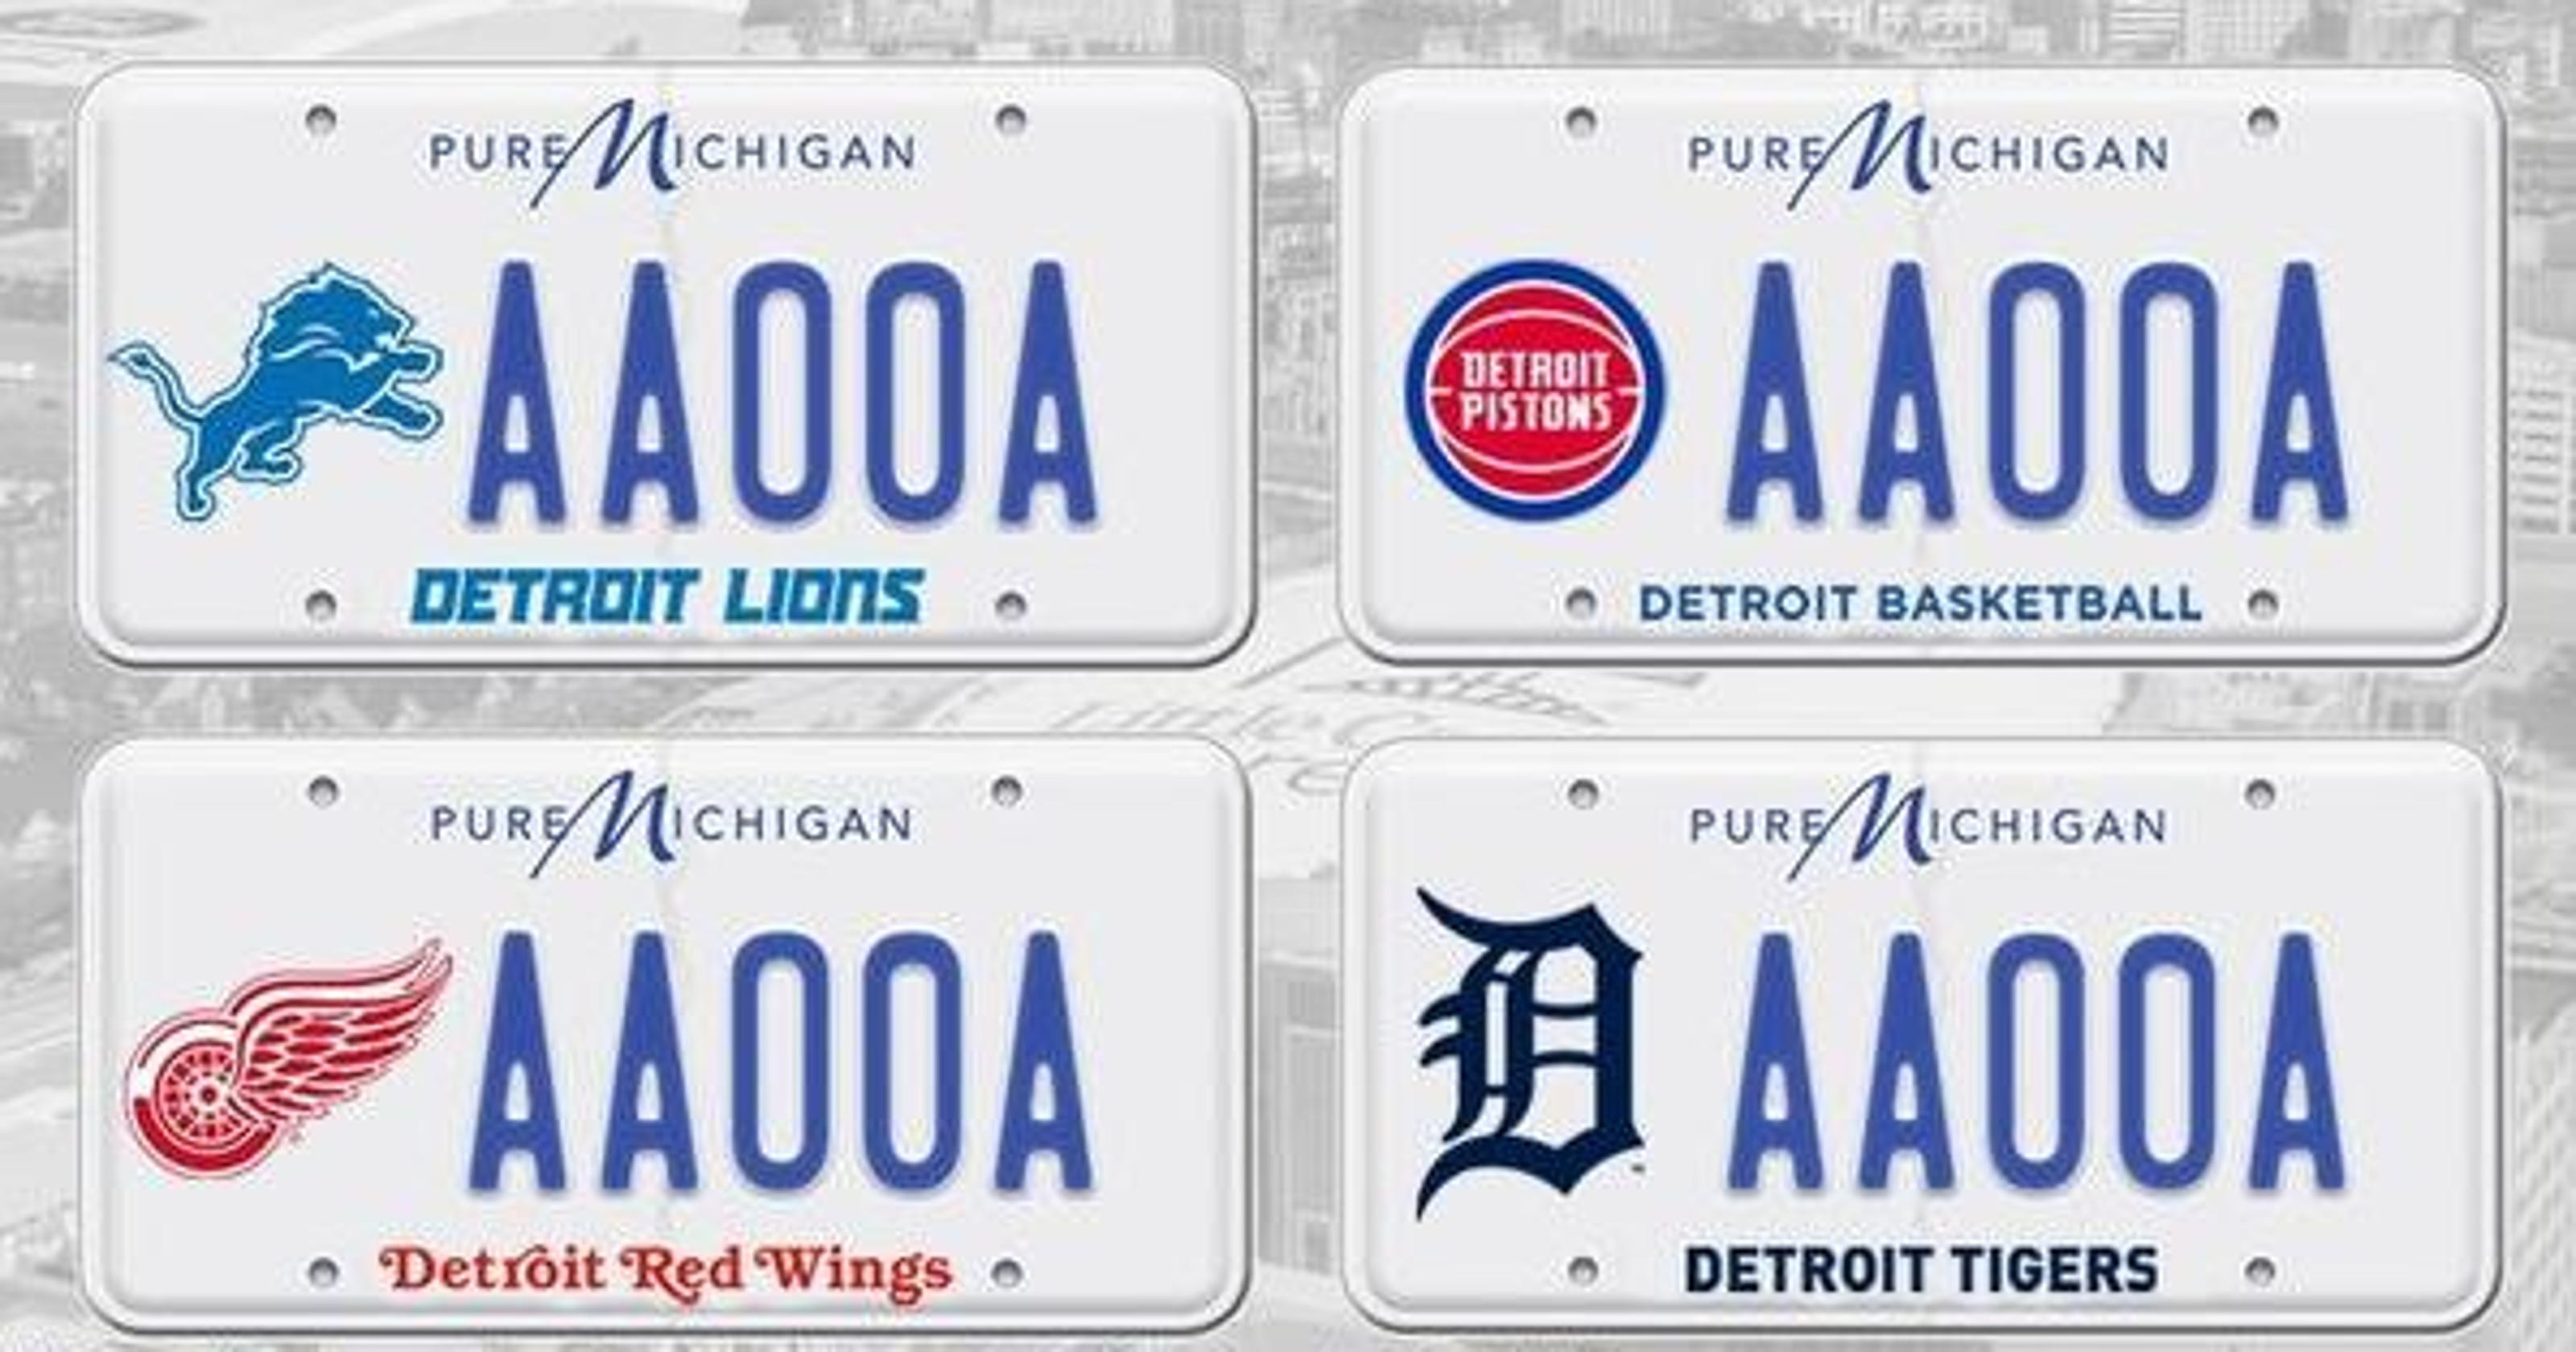 Detroit sports teams to be on Michigan license plates.